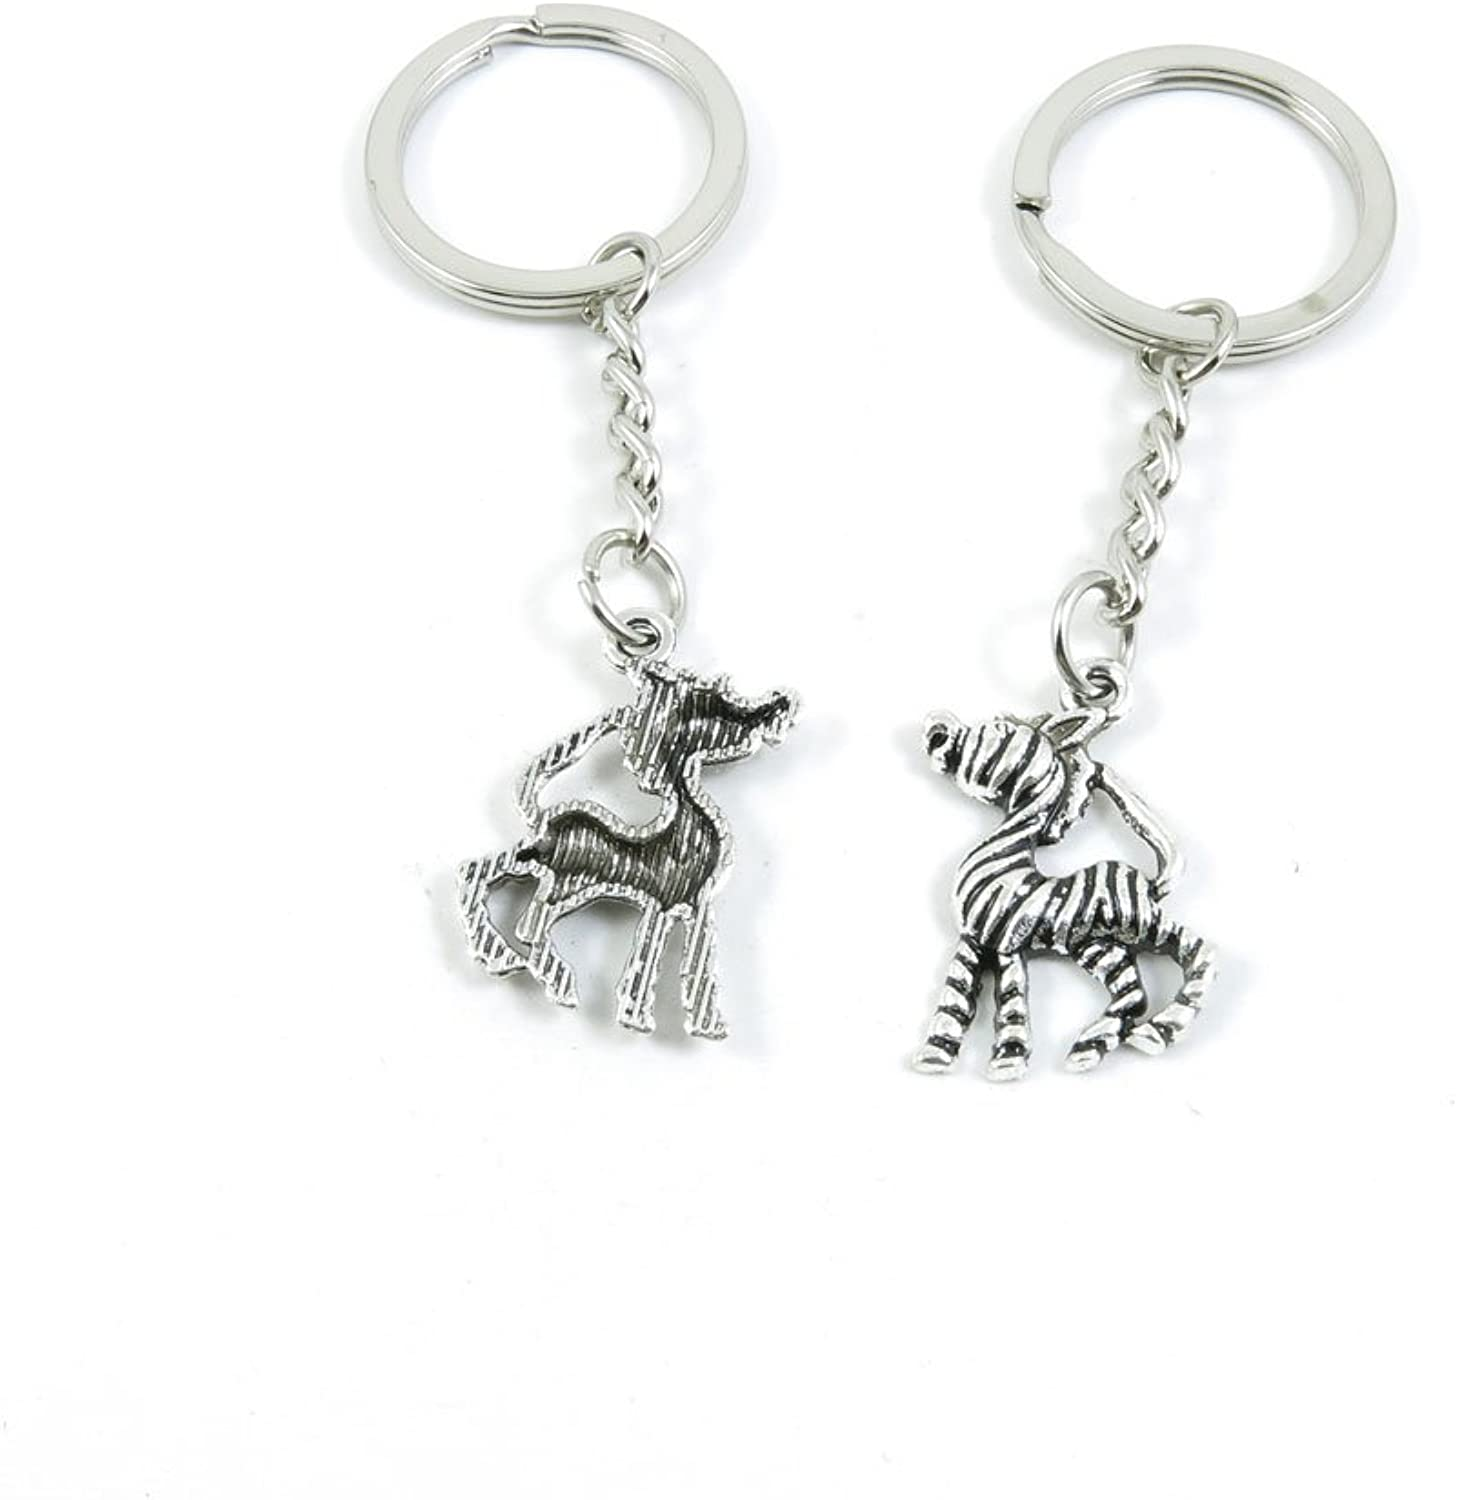 180 Pieces Fashion Jewelry Keyring Keychain Door Car Key Tag Ring Chain Supplier Supply Wholesale Bulk Lots T3IQ5 Zebra Horse